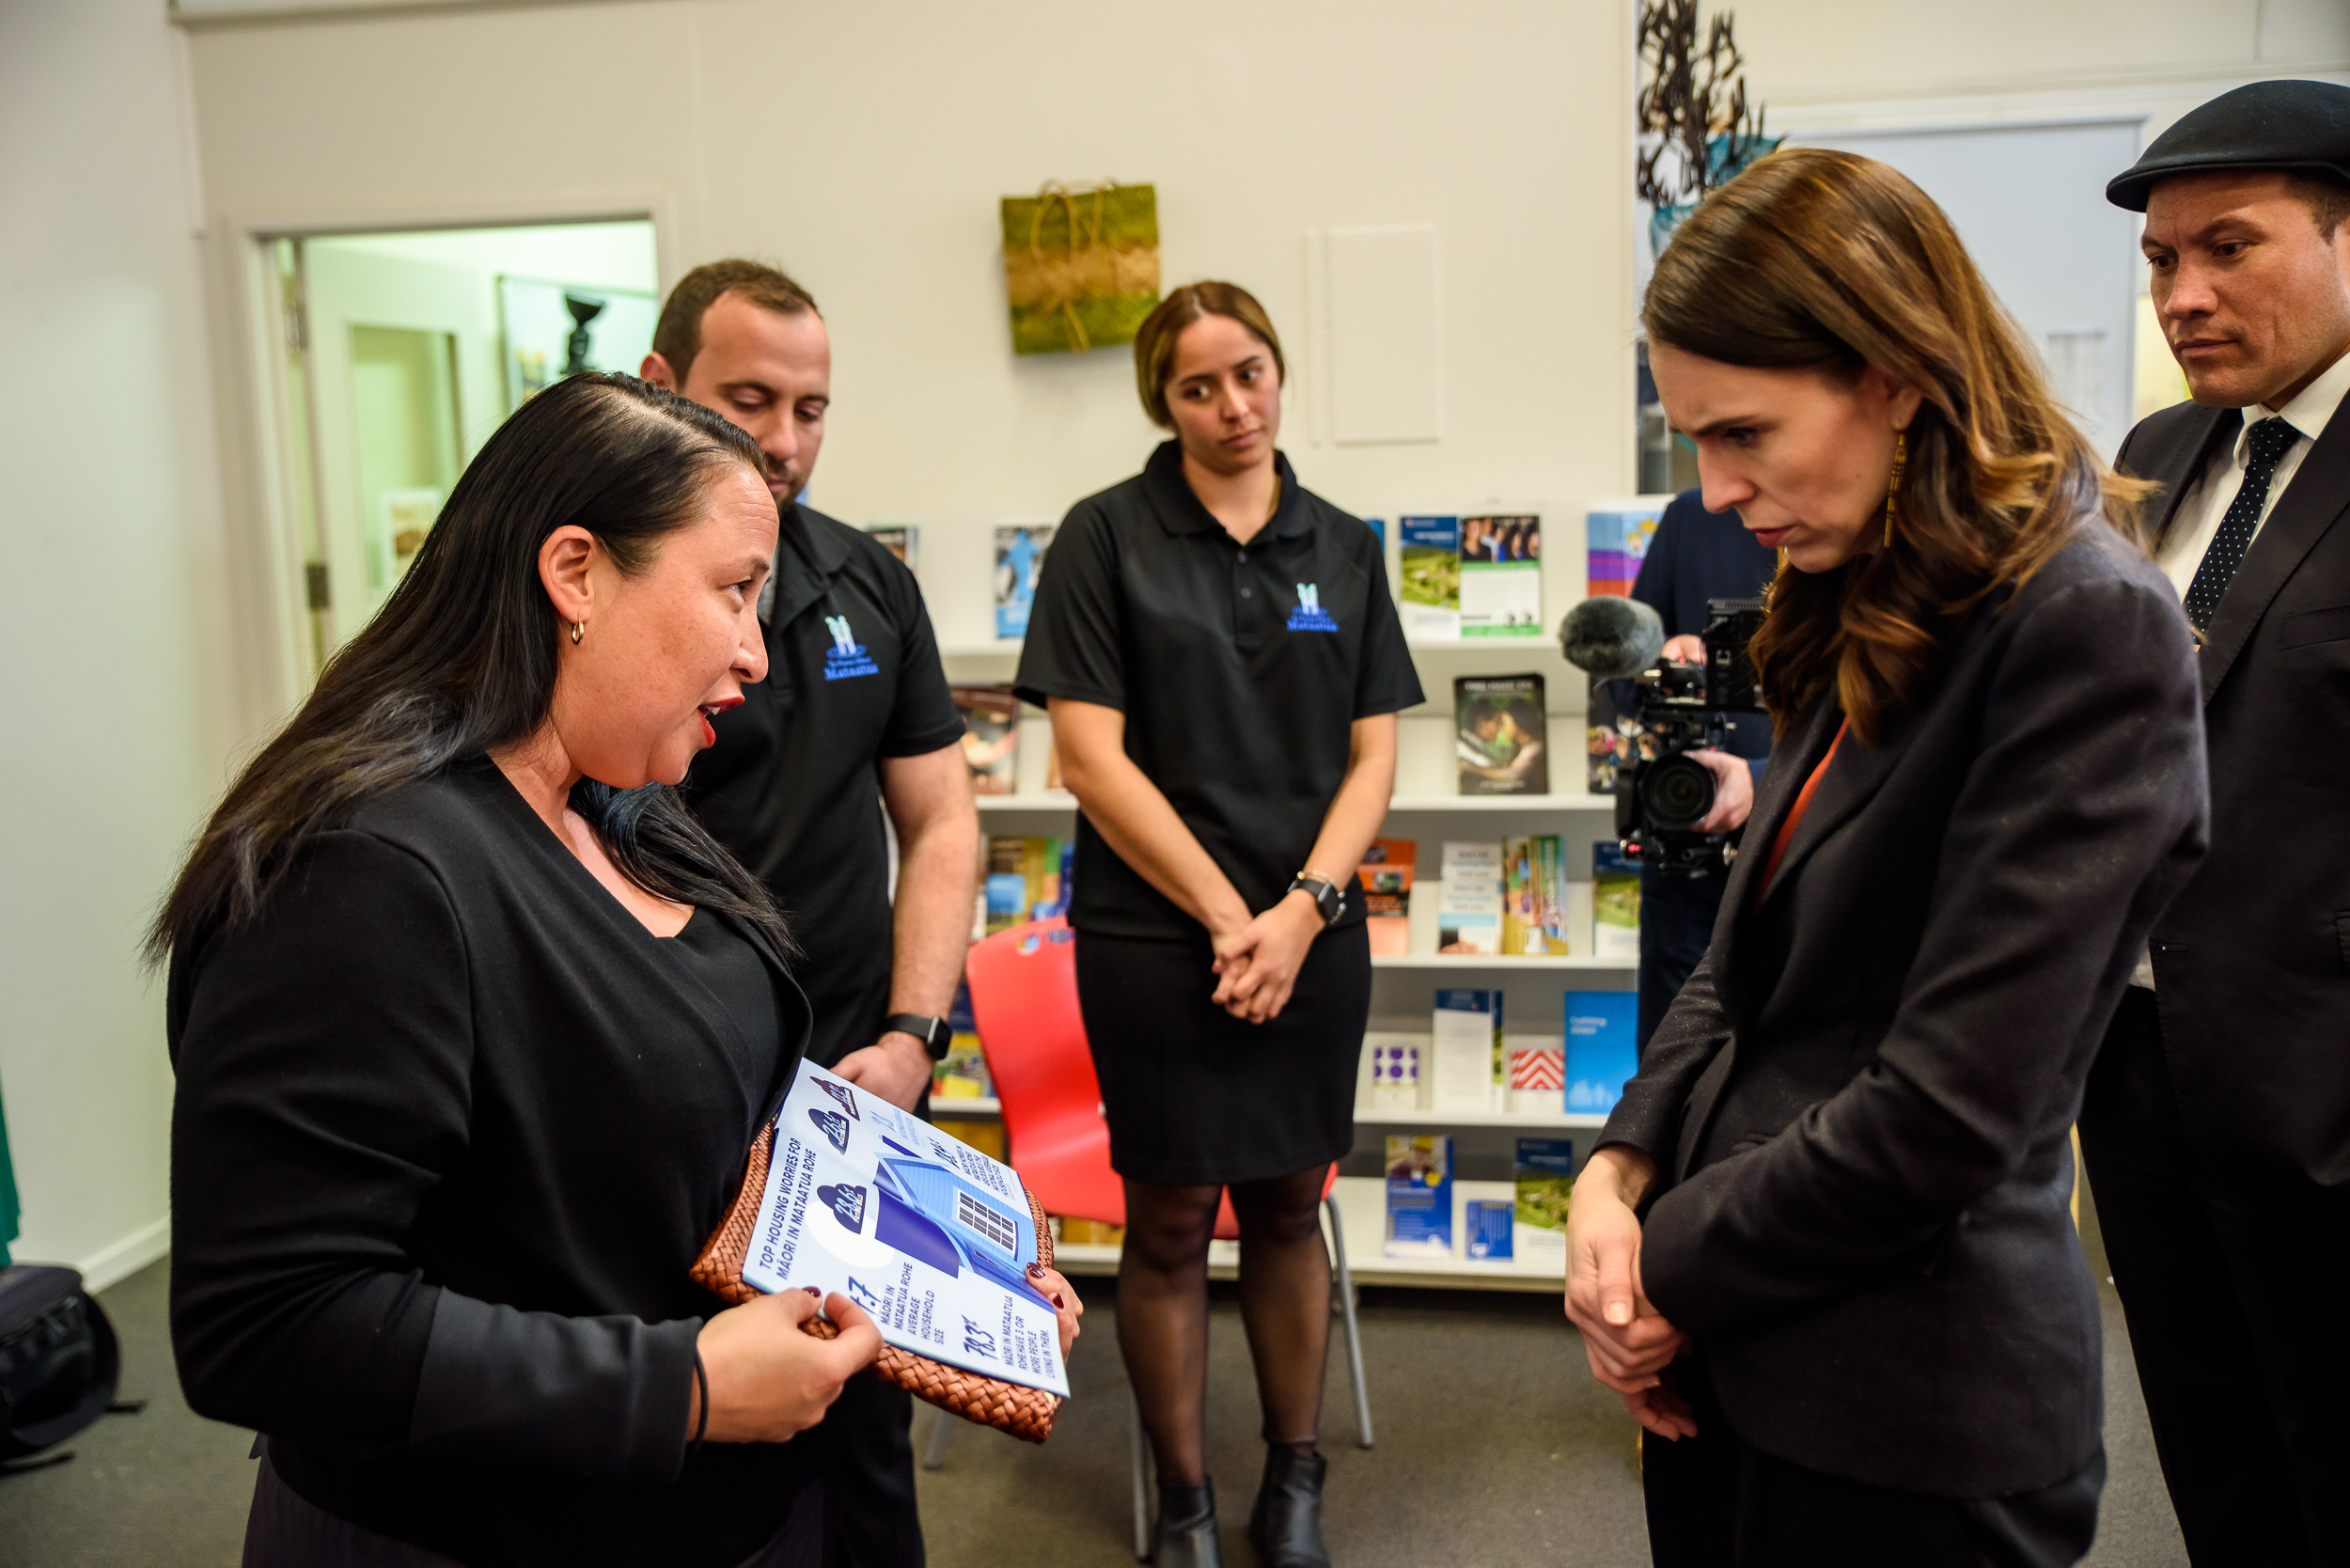 Prime Minister Jacinda Ardern closely examines a poster